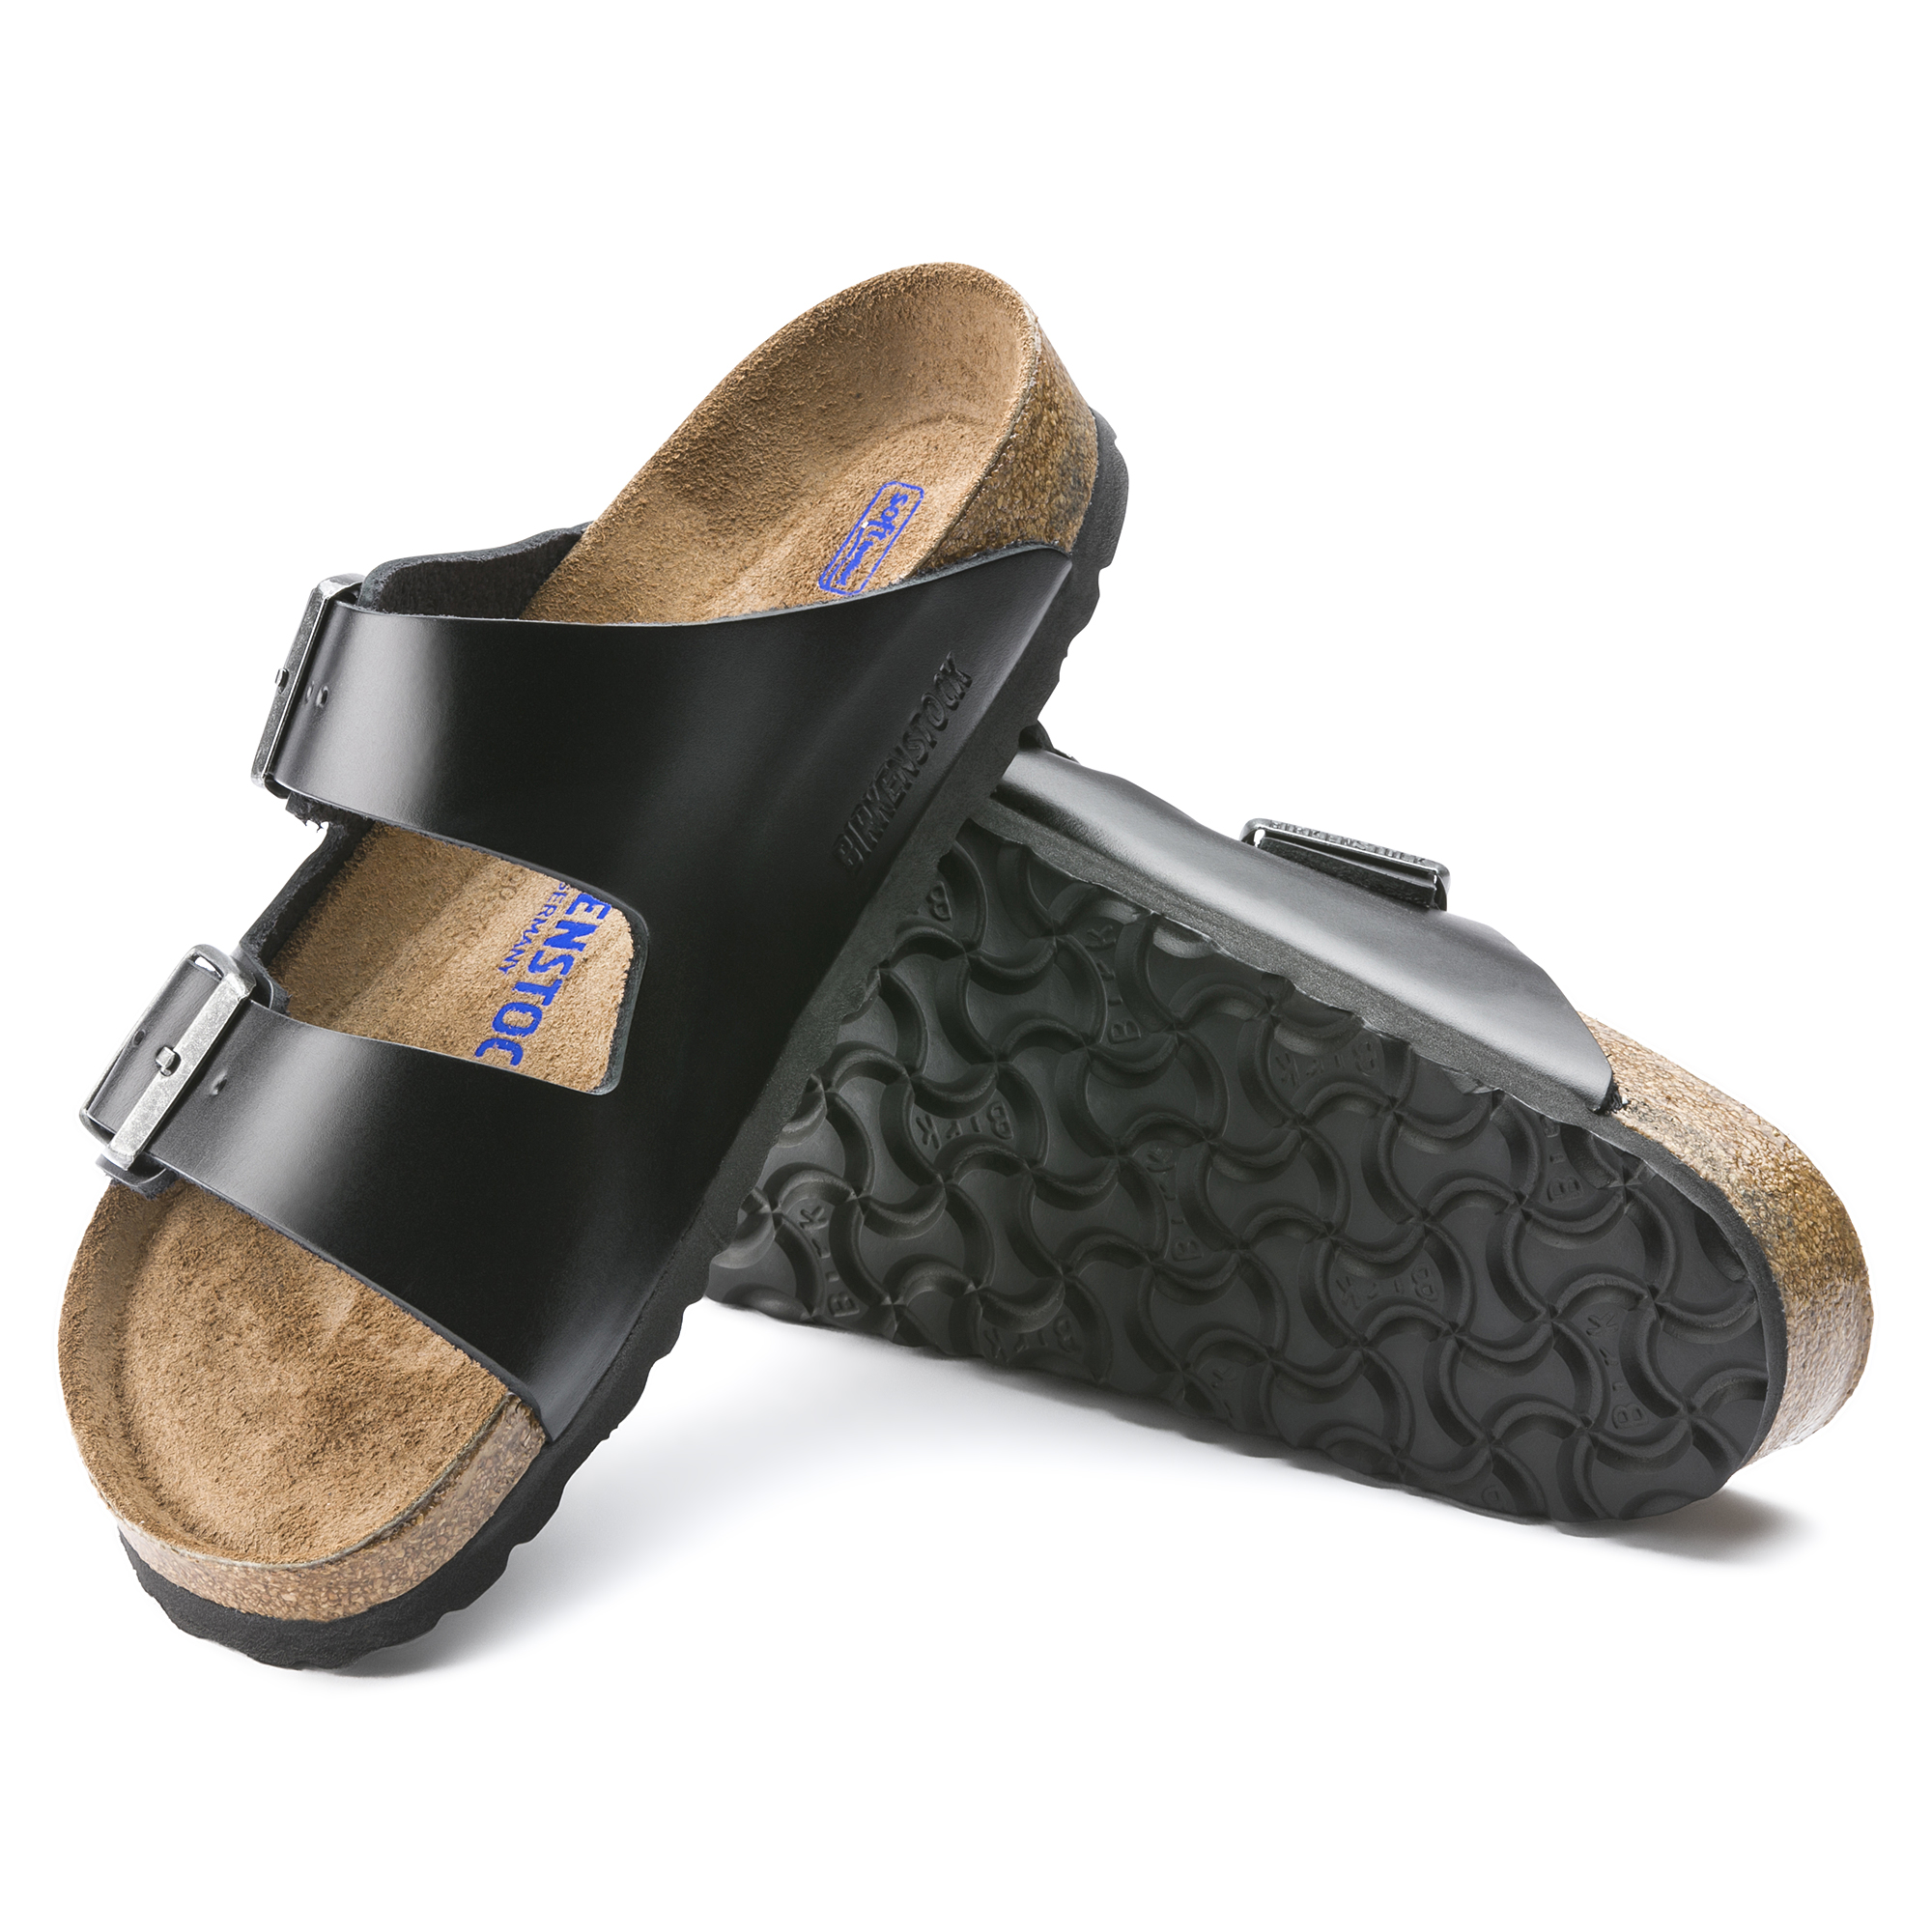 Arizona Oiled Leather | shop online at